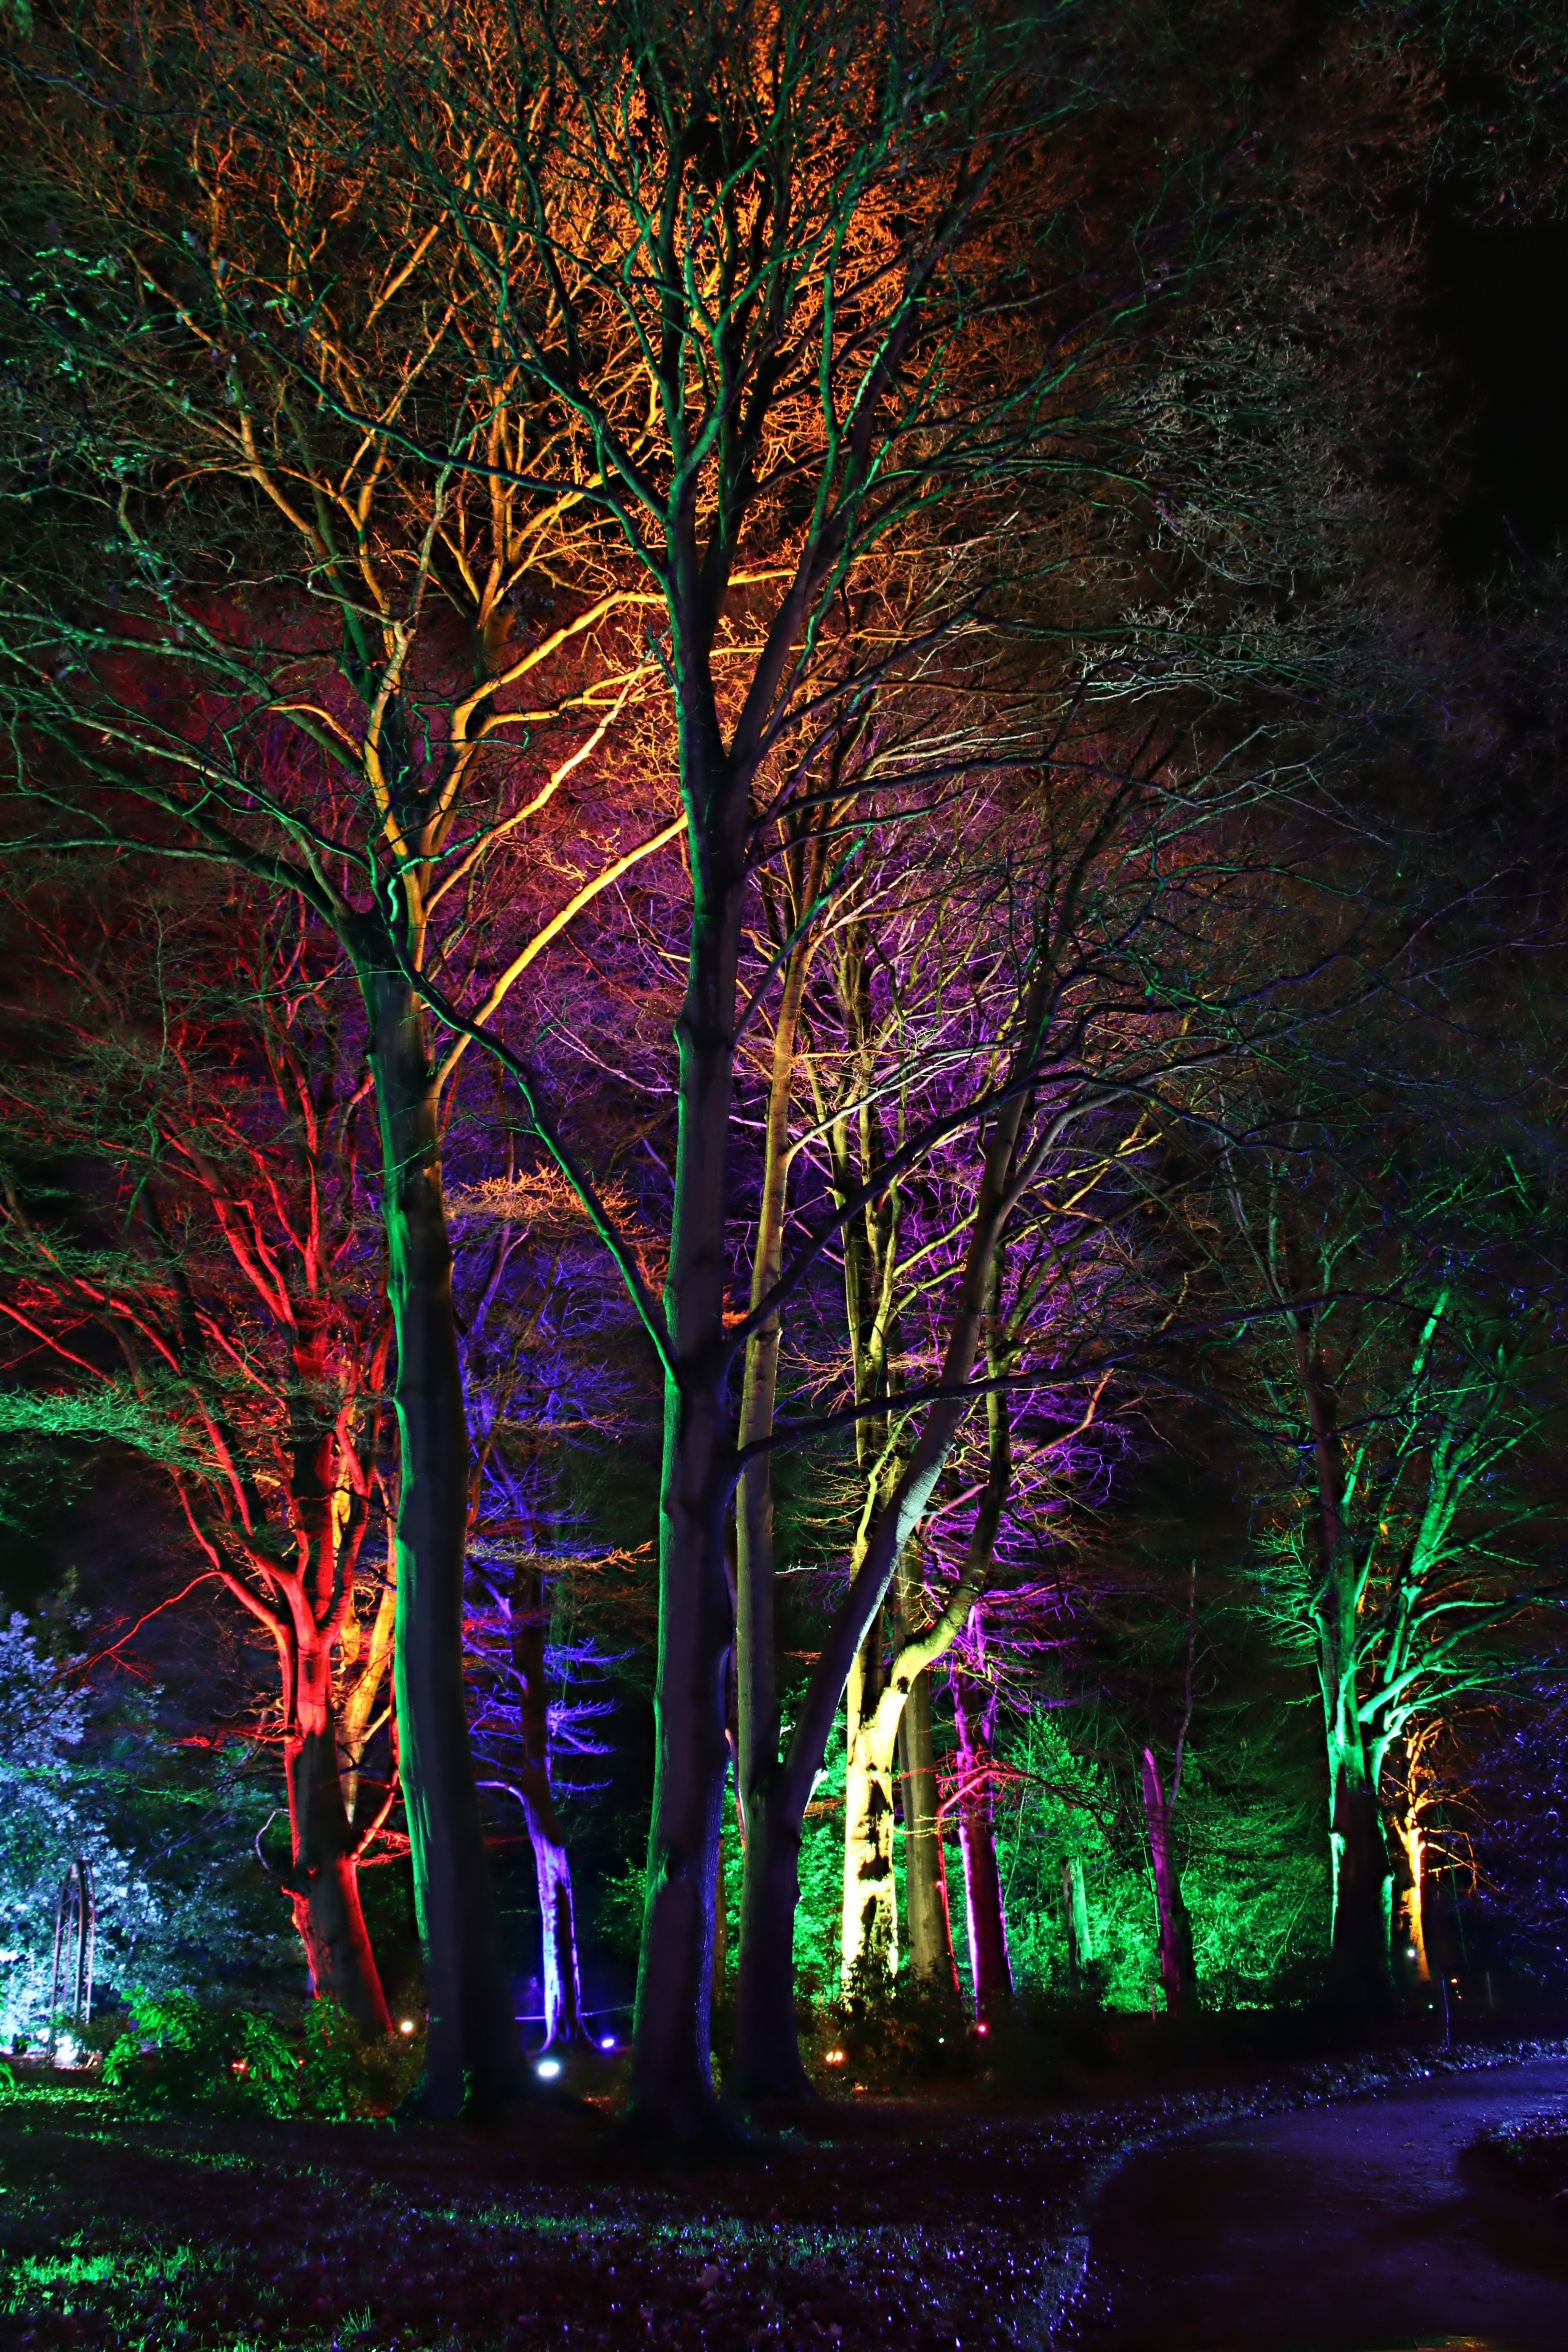 Lights Focused on Trees during Night